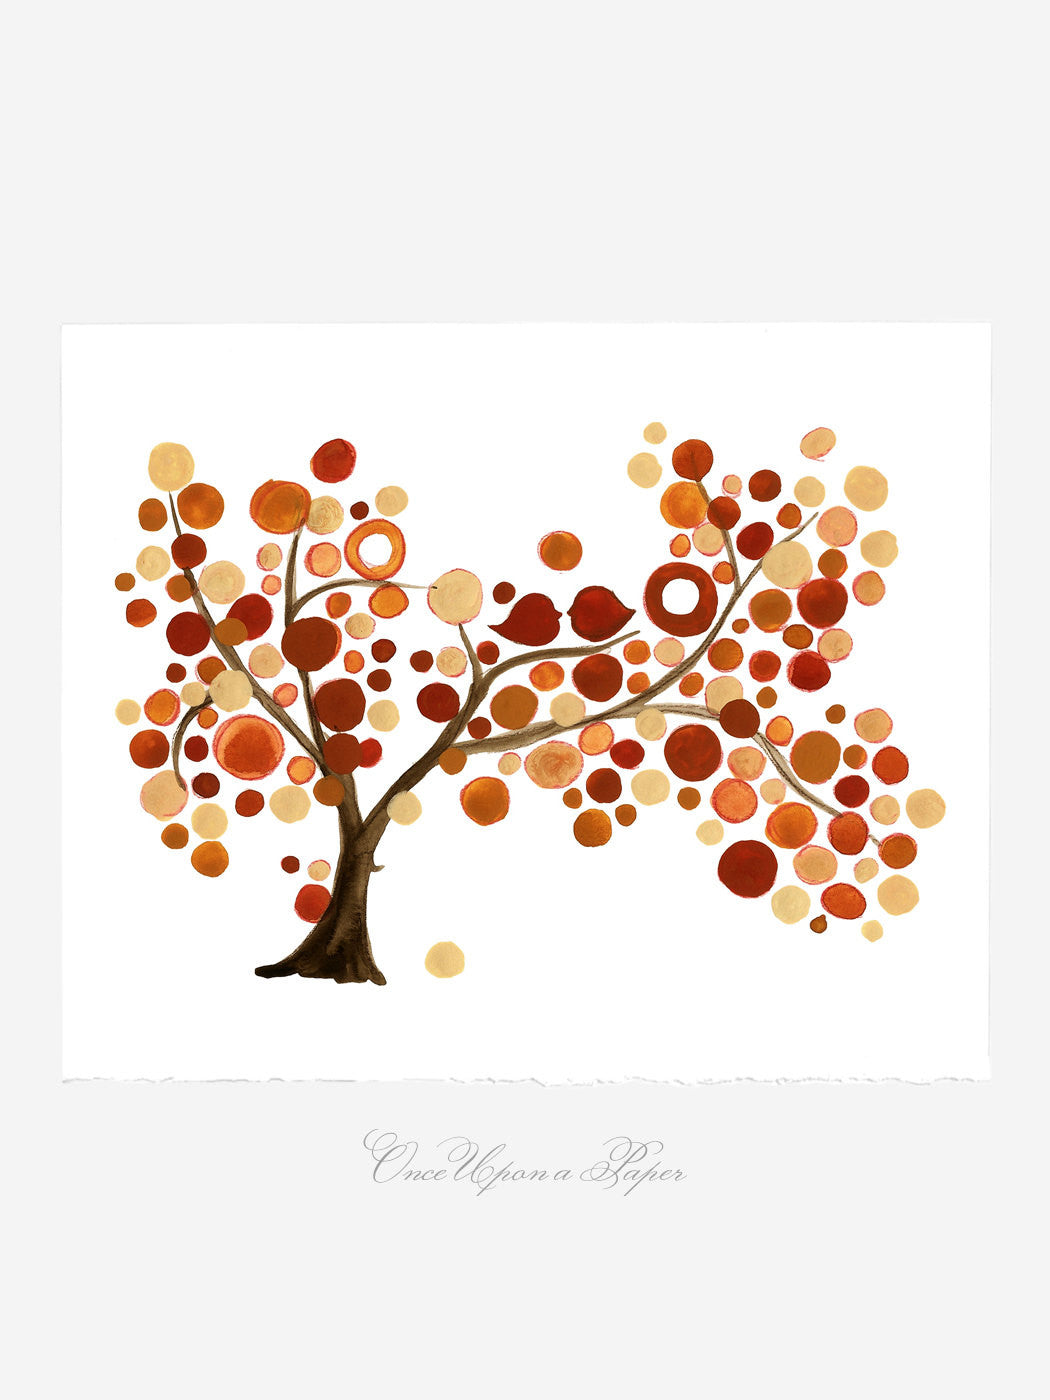 Mother Day Annyversary Gift - Mother Daughter Tree - Giclee Art Print Reproduction of Watercolor Painting -Trees of Life Collection